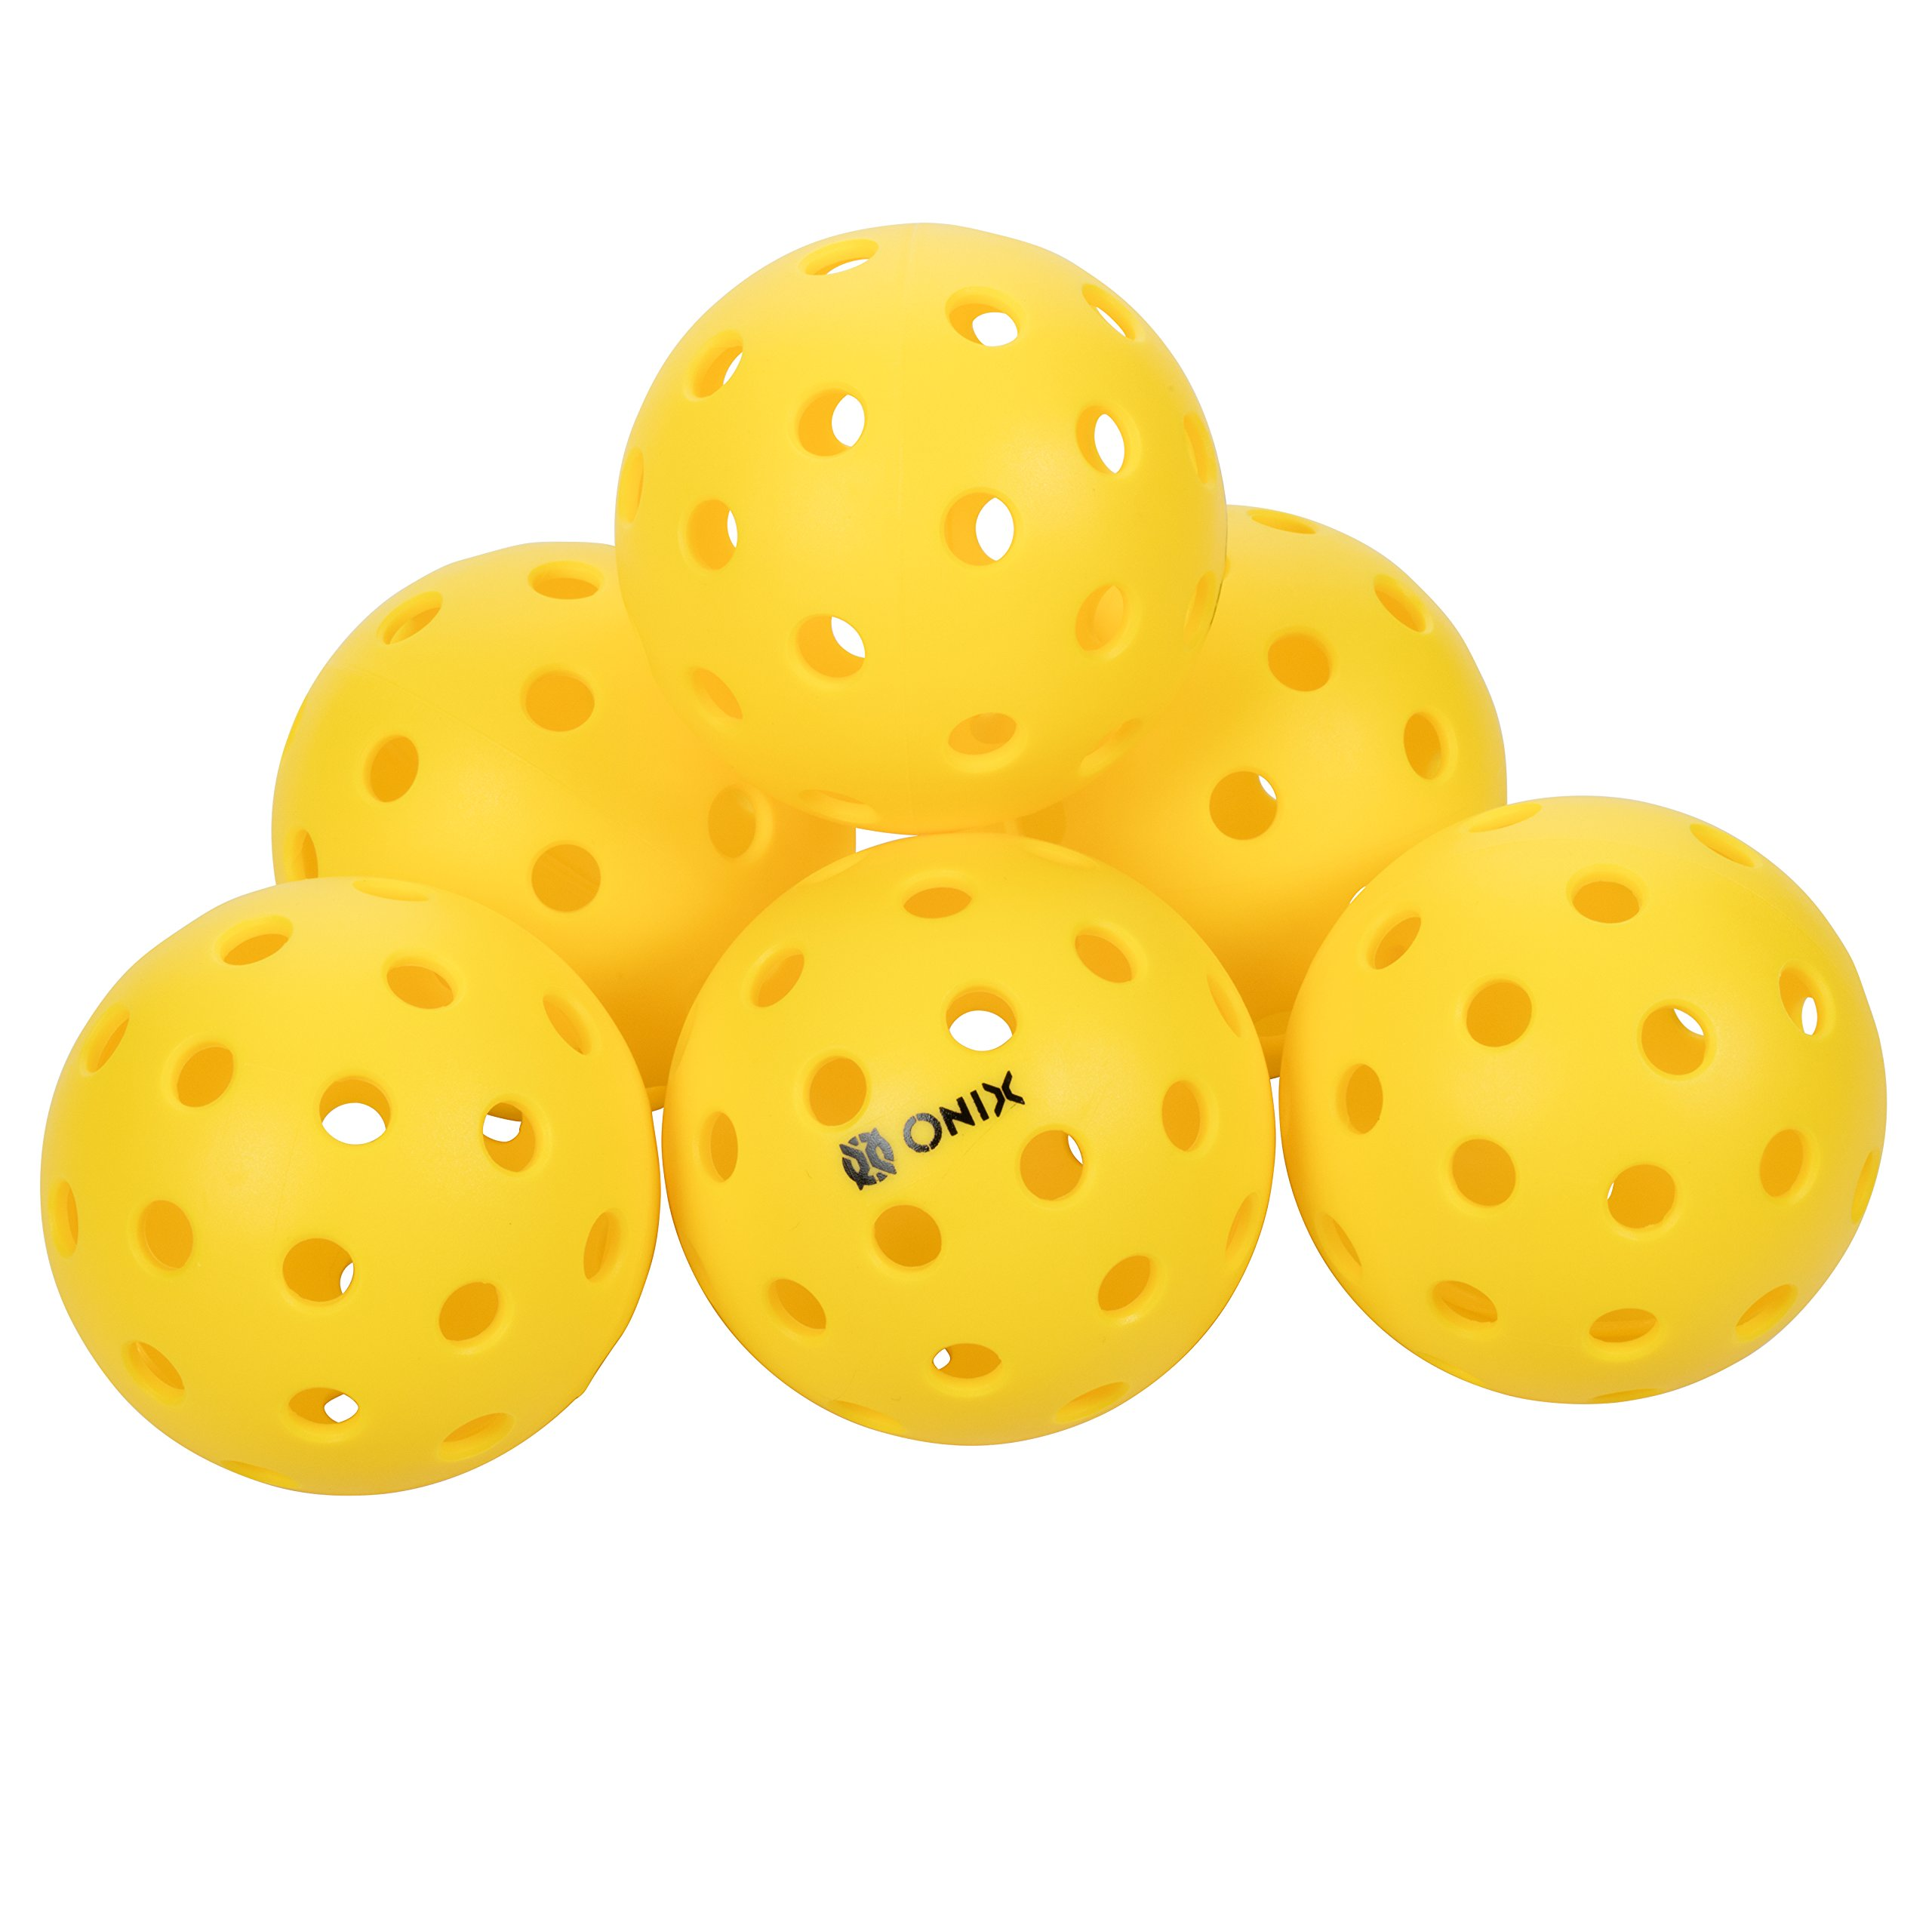 Onix Pure 2 Outdoor Pickleball Balls (6-Pack) Specifically Designed and Optimized for Pickleball